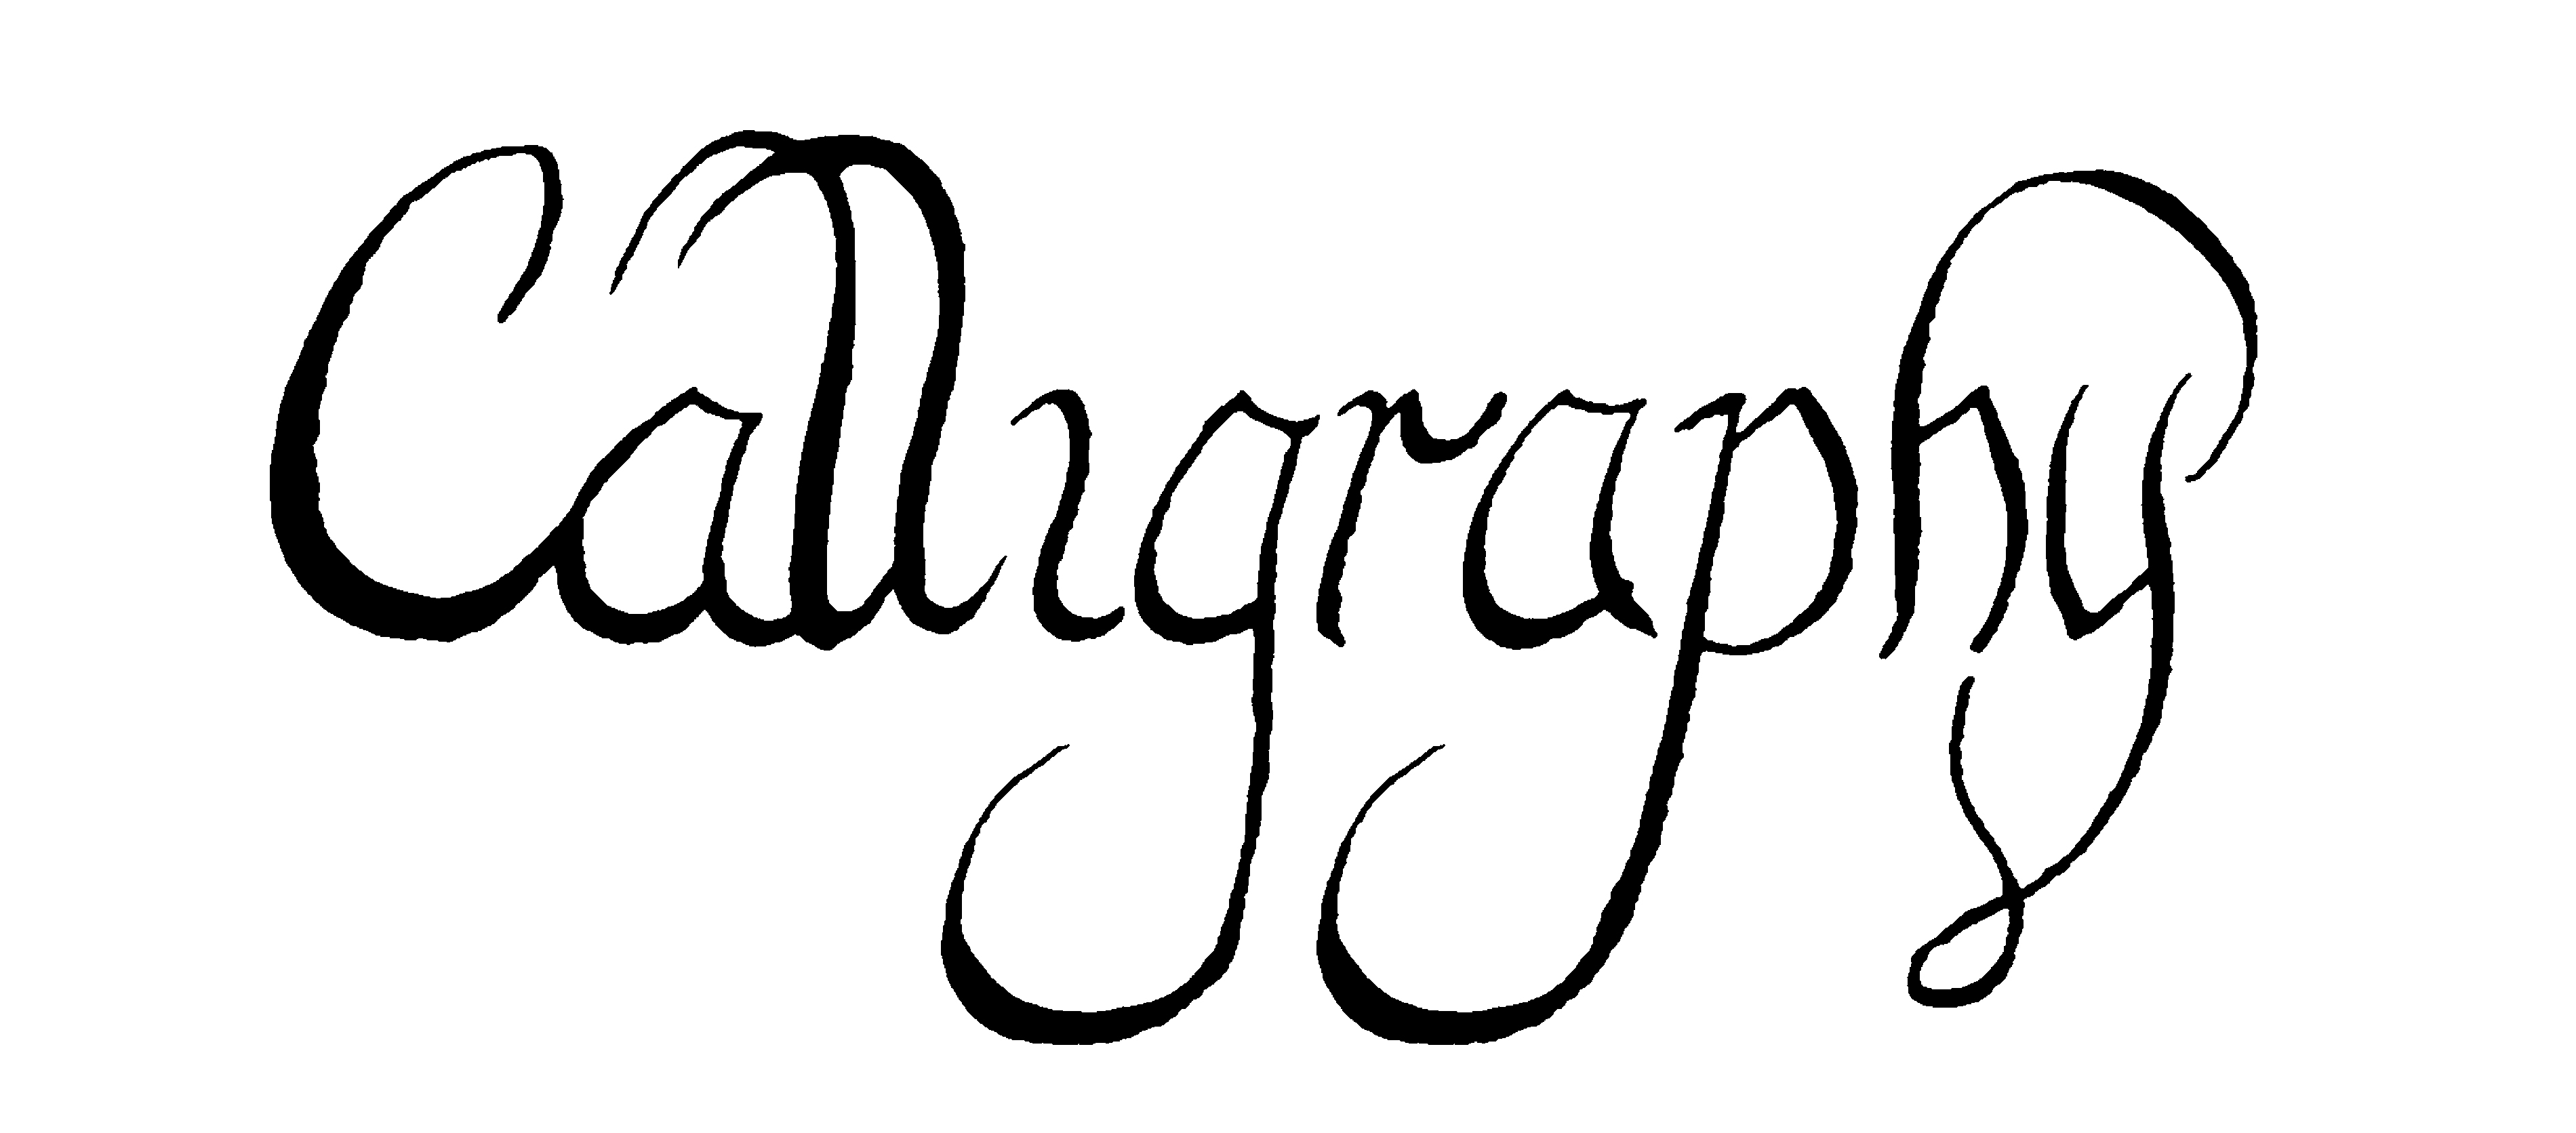 Calligraphy-Bitmap-file-sample